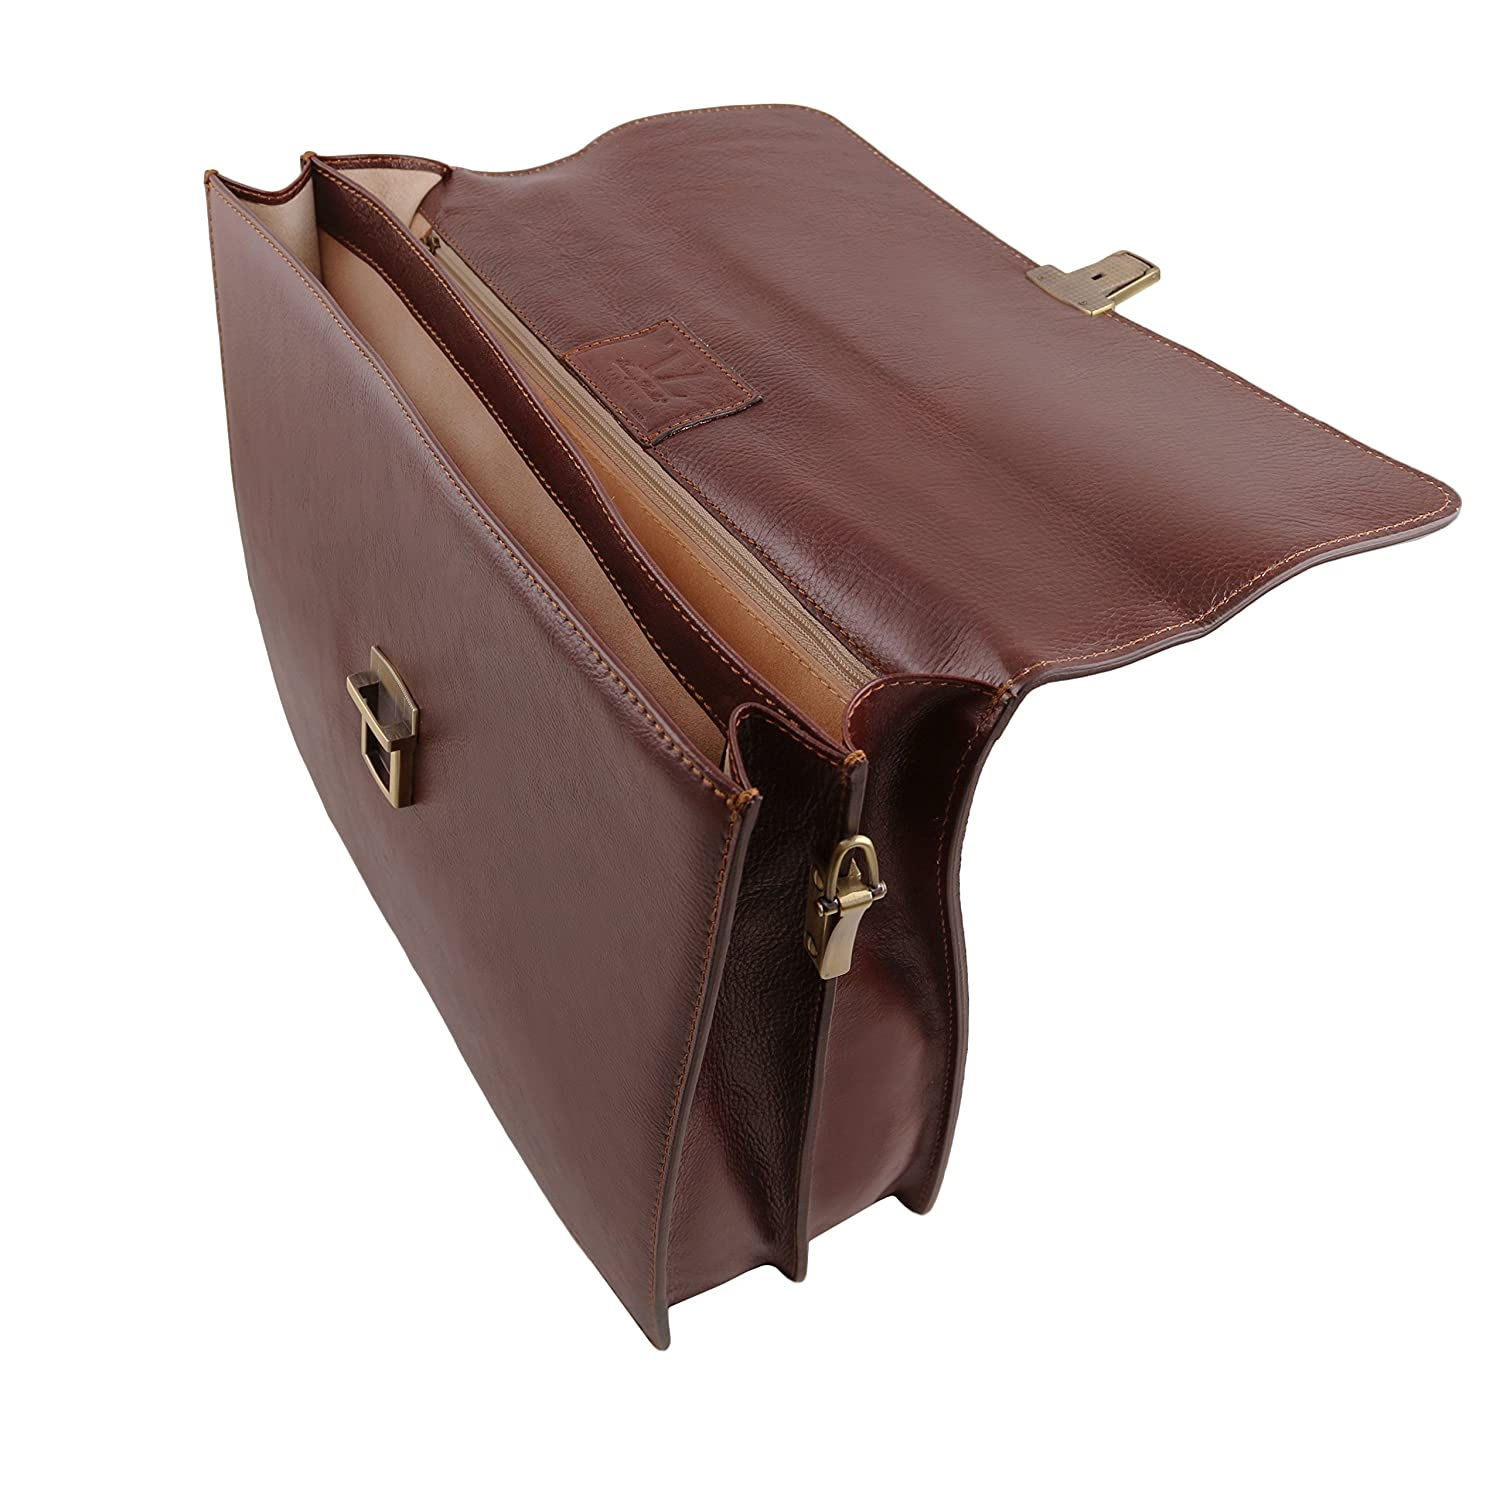 PARMA Tuscany Leather TL141350 Leather briefcase 2 compartments